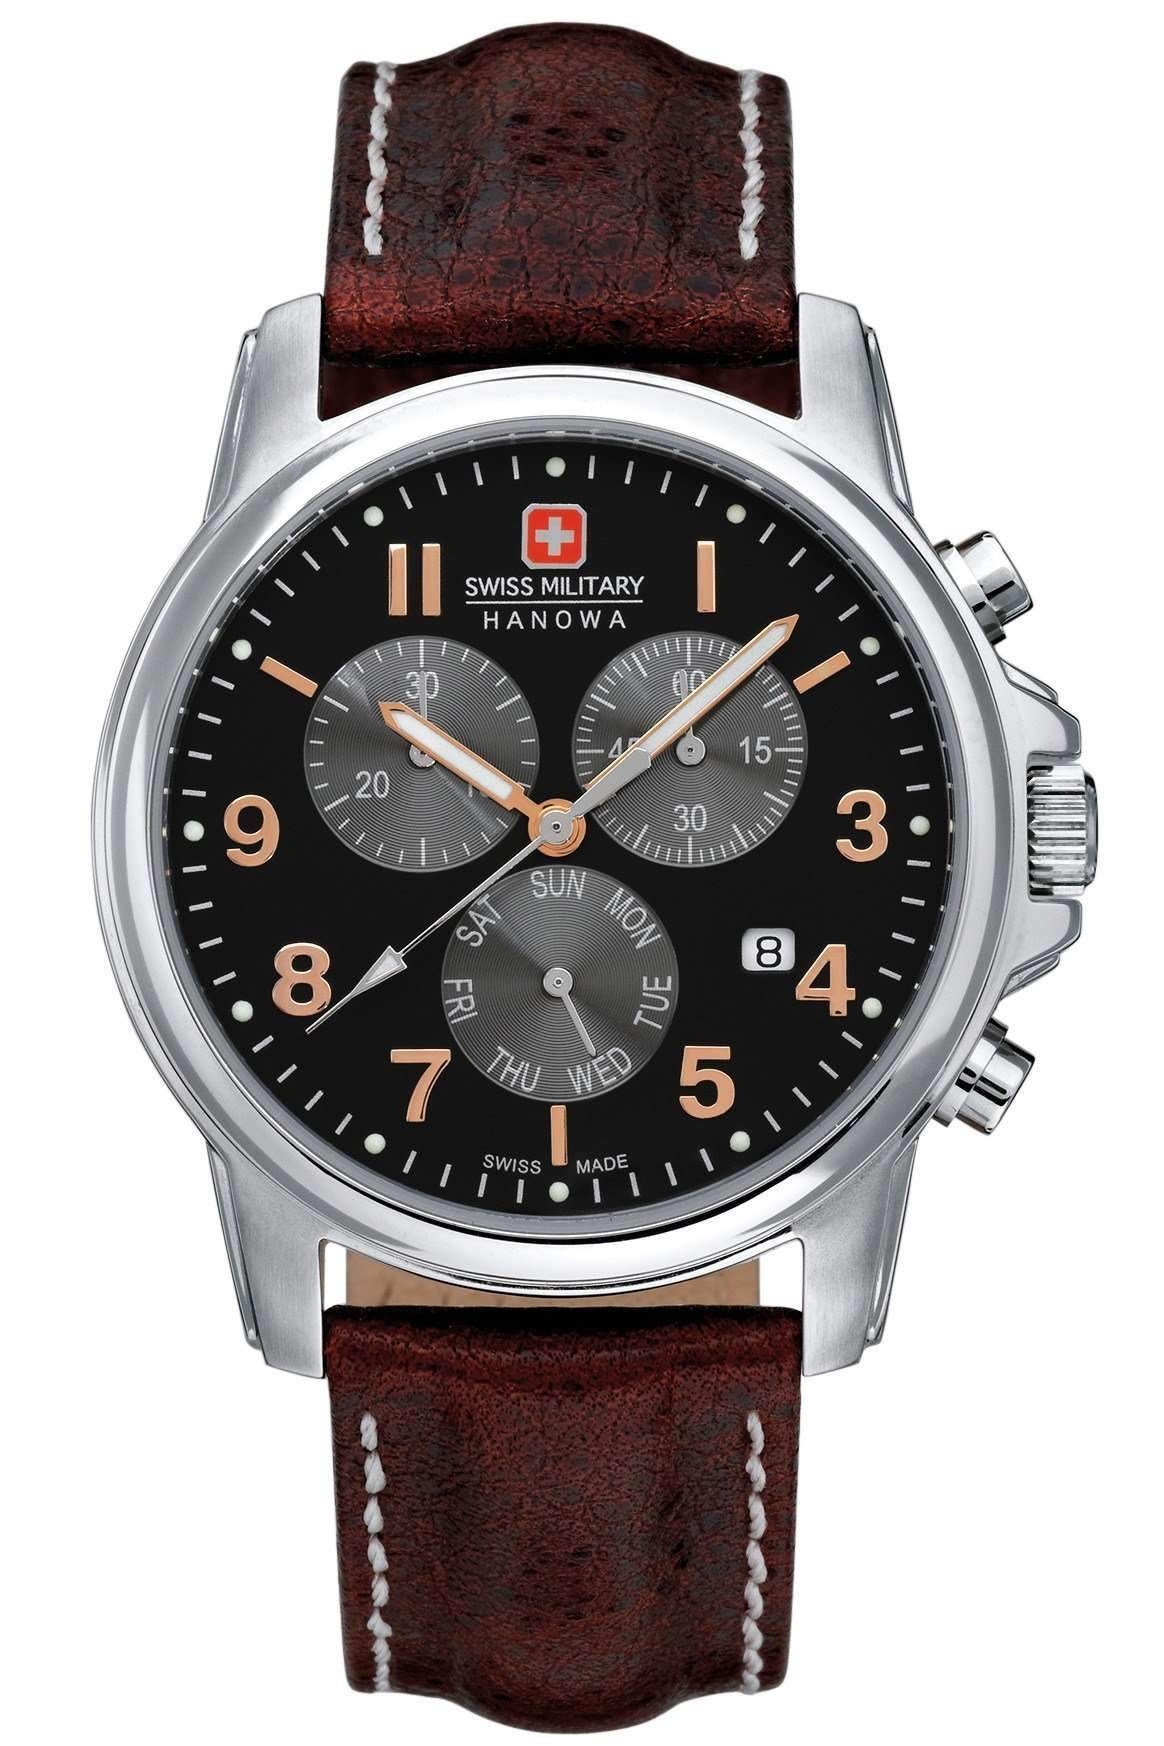 Https Daily Products 0101dw 2018 02 Fossil Jr1510 Original Ure Swiss Military Watches Soldier Herreur 06 4142 1 04 007 09 1v1519822594